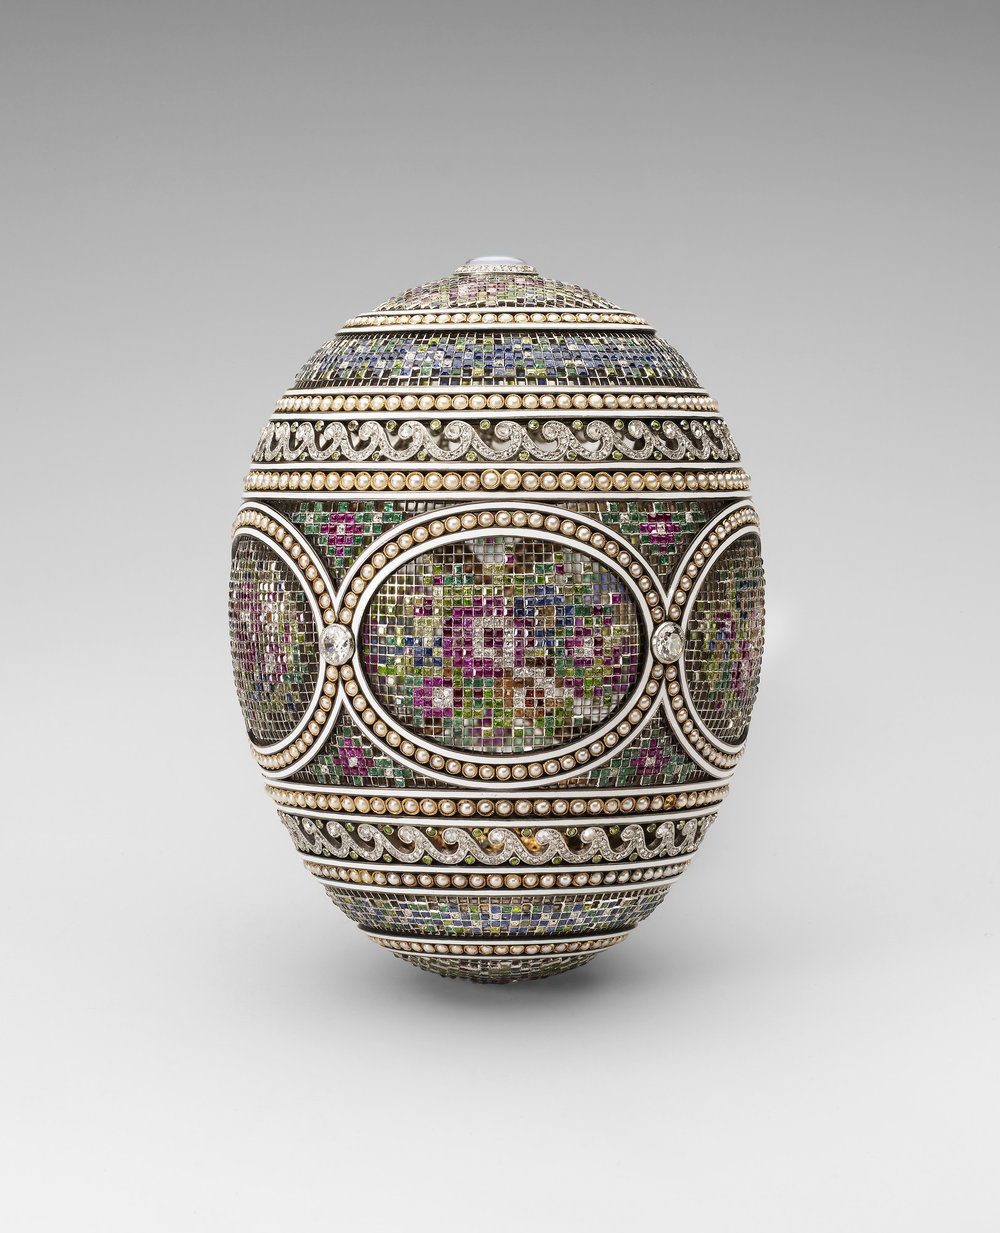 The Mosaic imperial egg, 1914, image from the Royal Collection Trust. This egg was the counterpart to the Catherine the Great Egg, and was presented to Tsarita Alexandra Feodorovna.